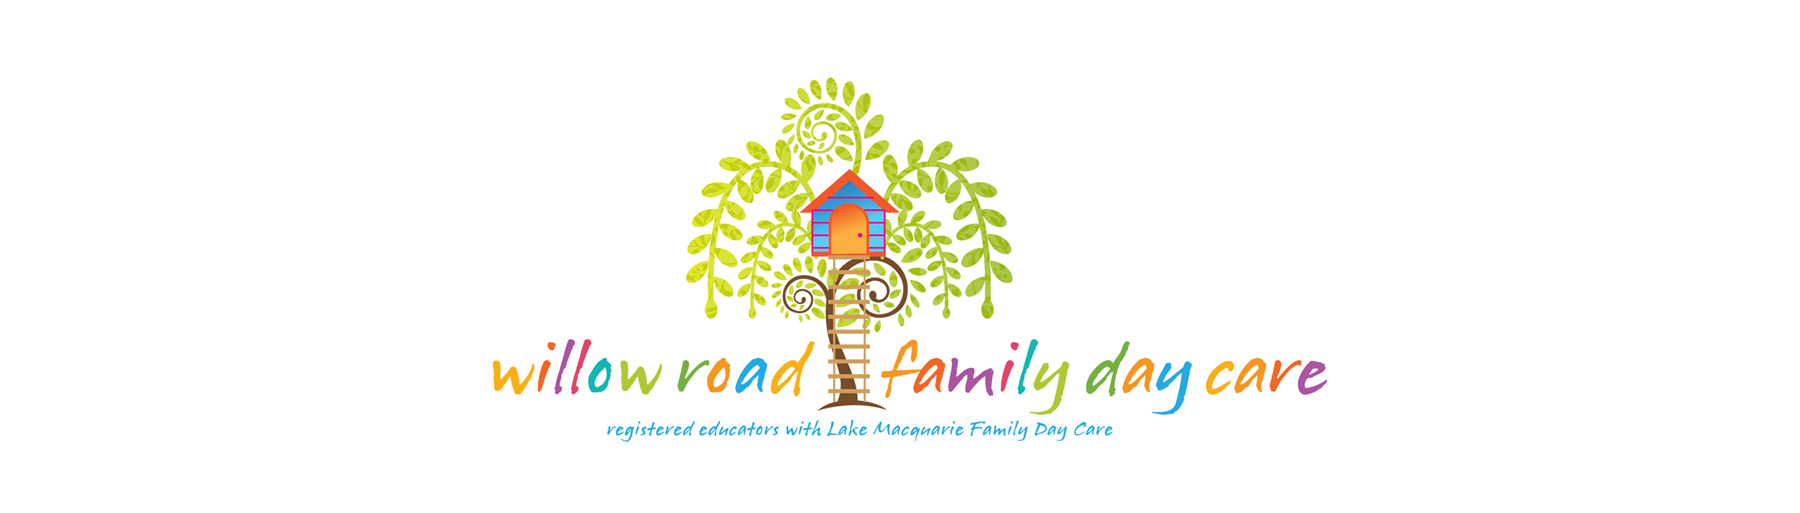 Willow Road Family Day Care Logo on white background isolated